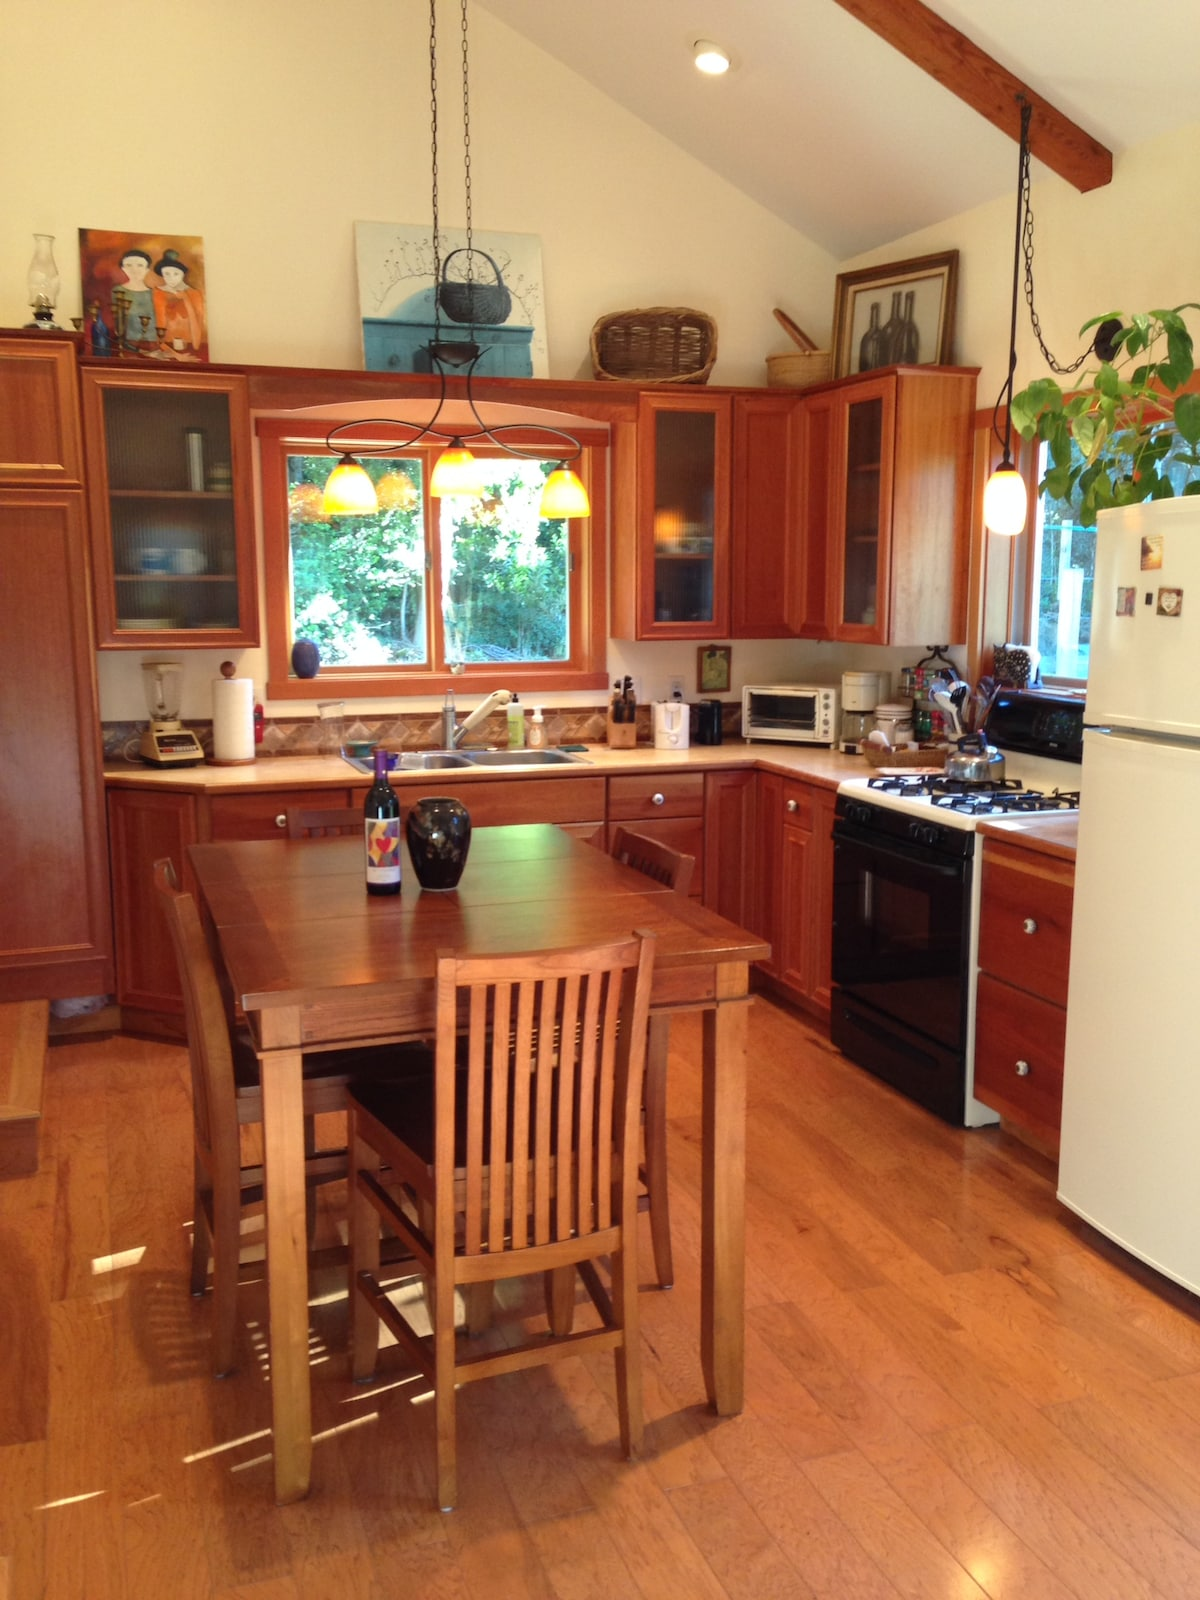 A fully equipped kitchen and with a pretty table.